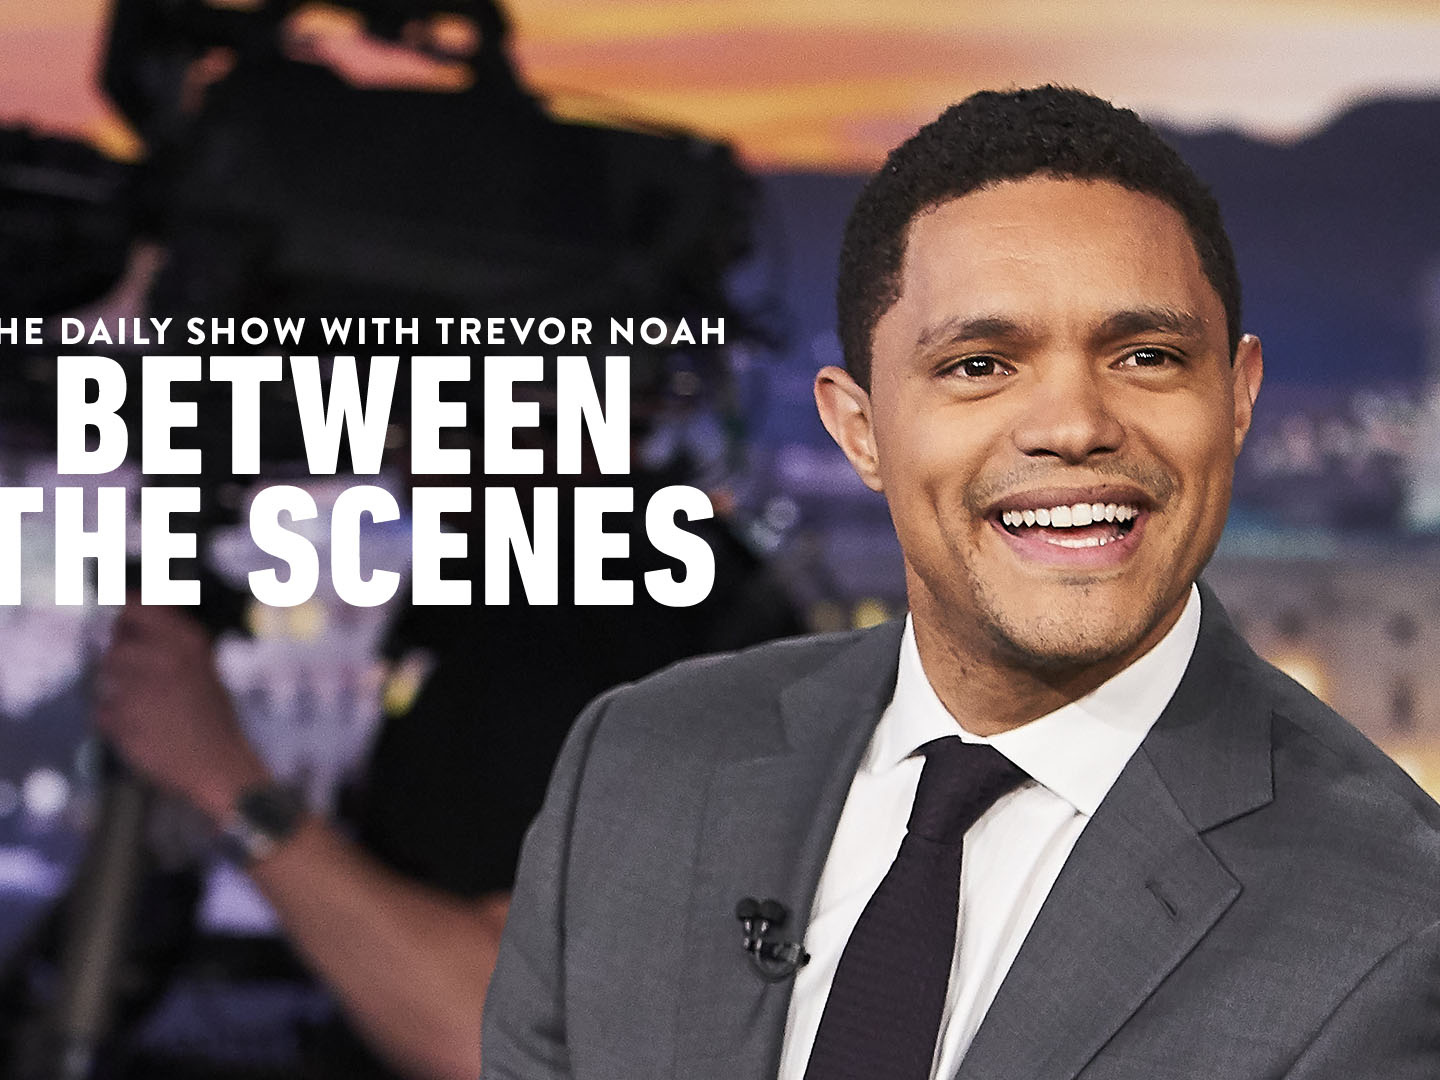 The Daily Show with Trevor Noah - Between the Scenes Thumbnail